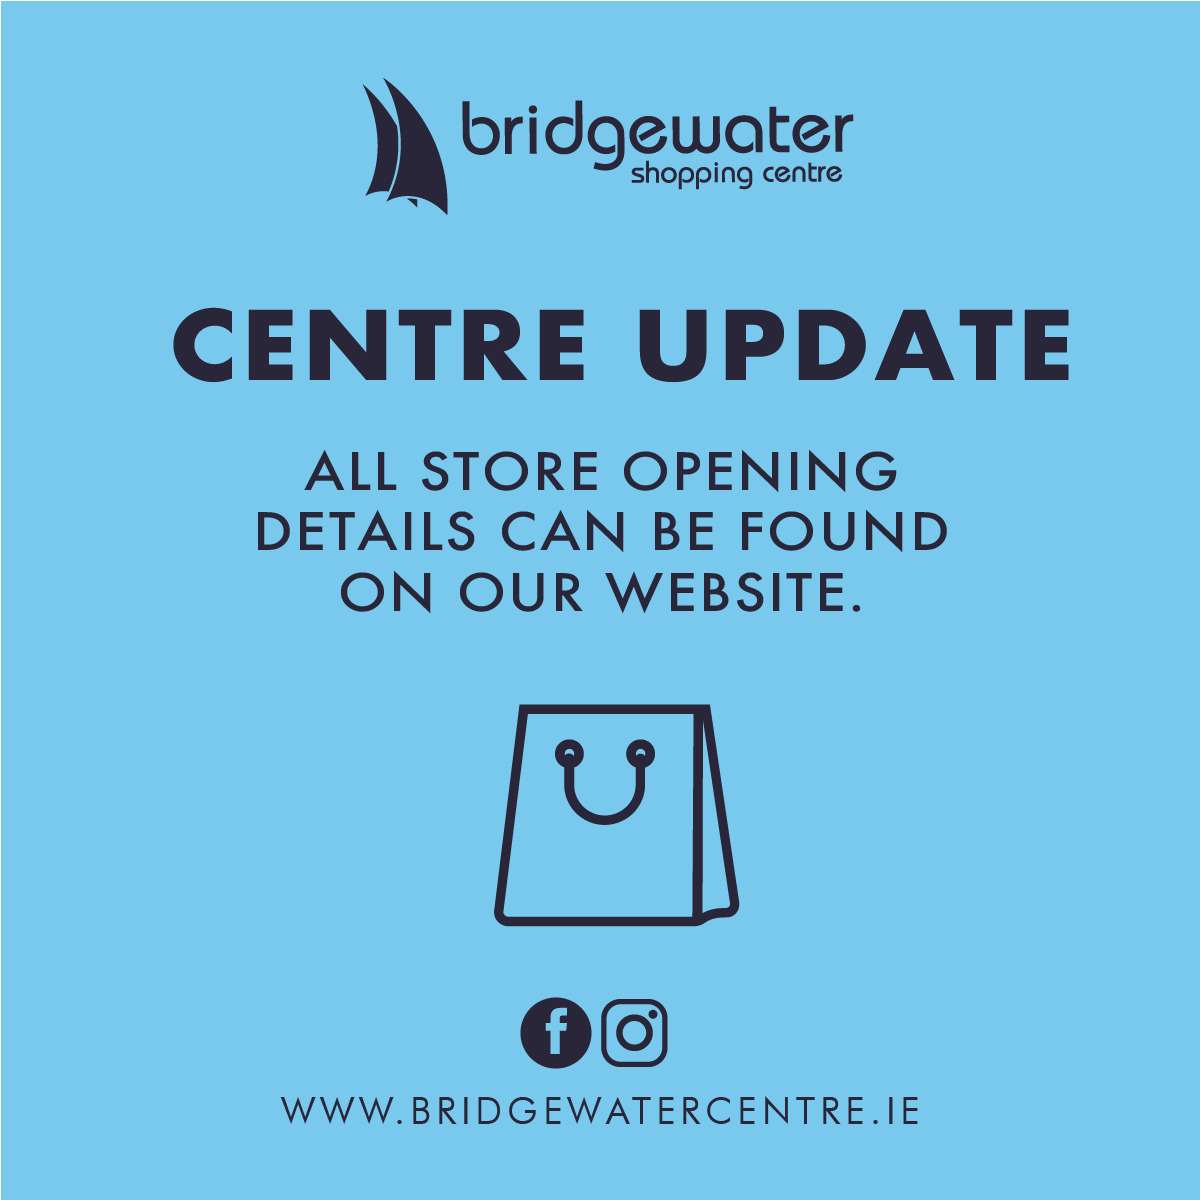 Stores at Bridgewater Shopping Centre are Open!